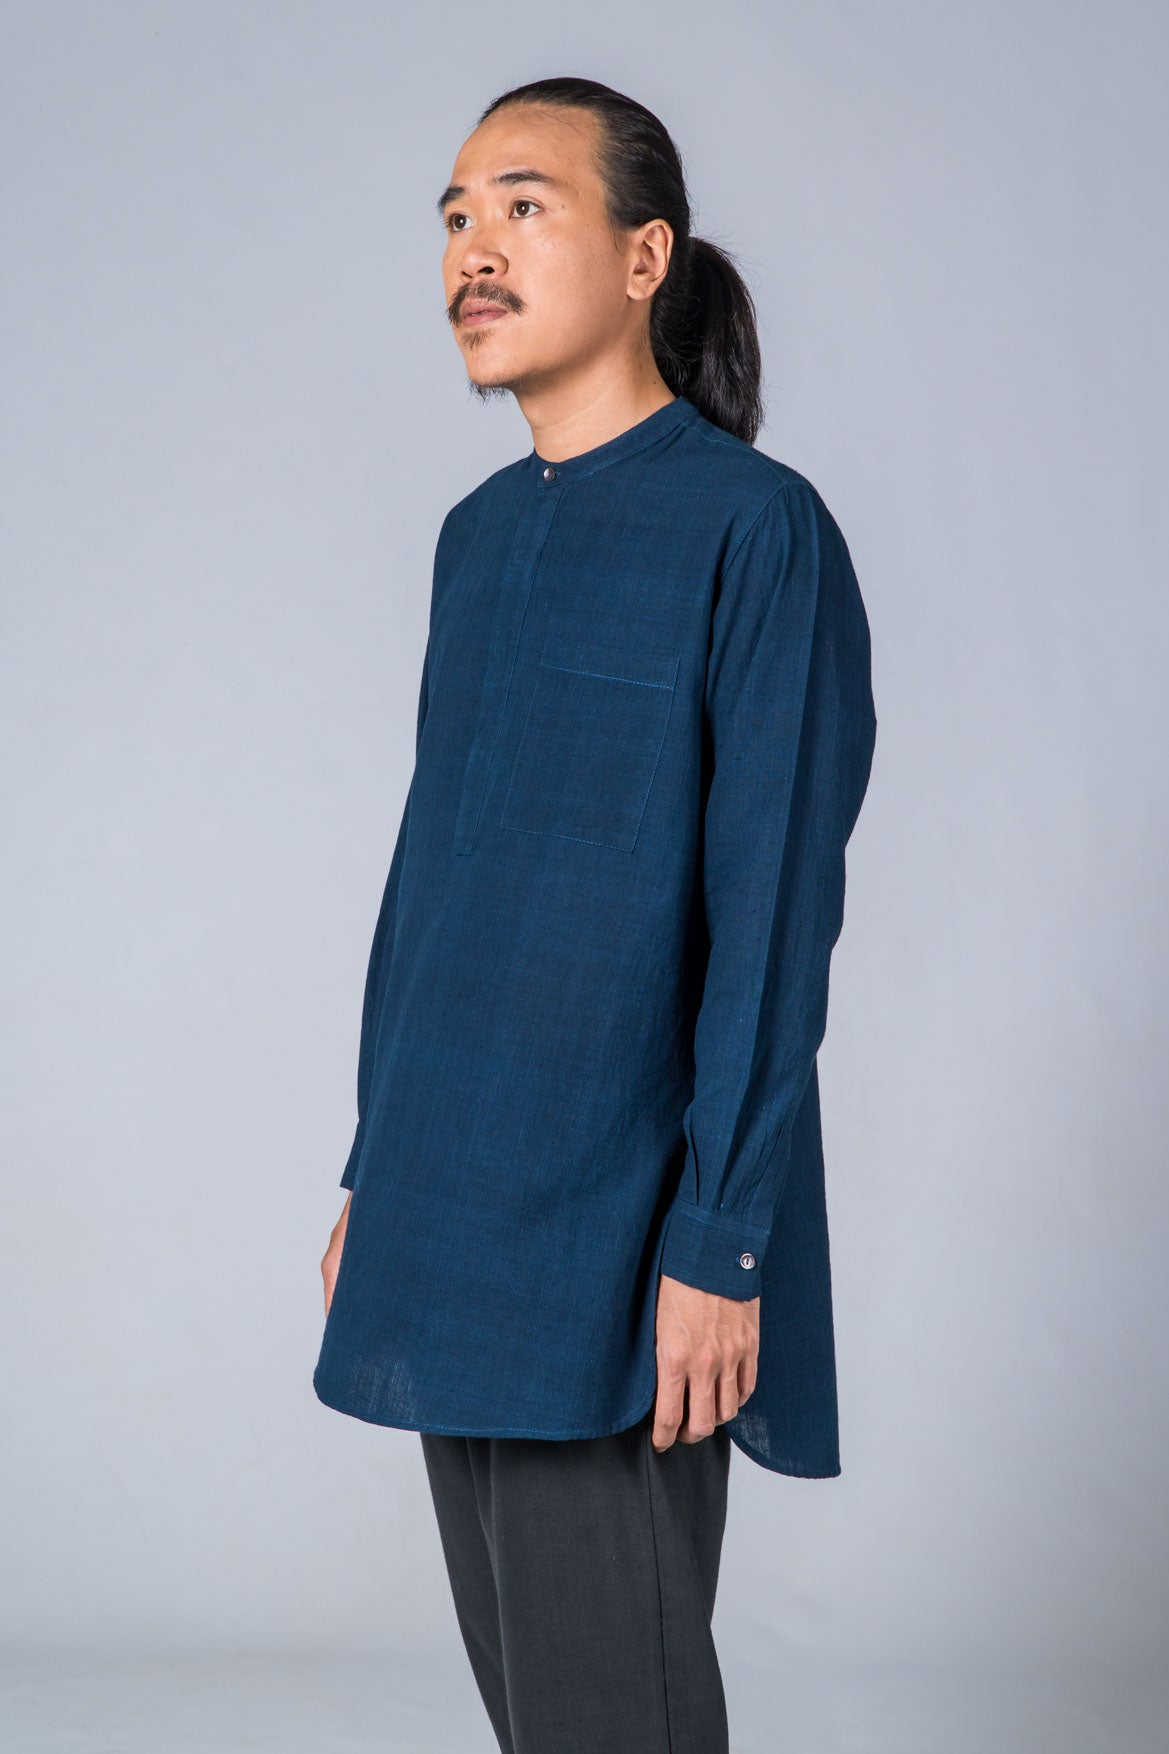 Natural Indigo Handwoven Kurta - ARISTA - Upasana Design Studio